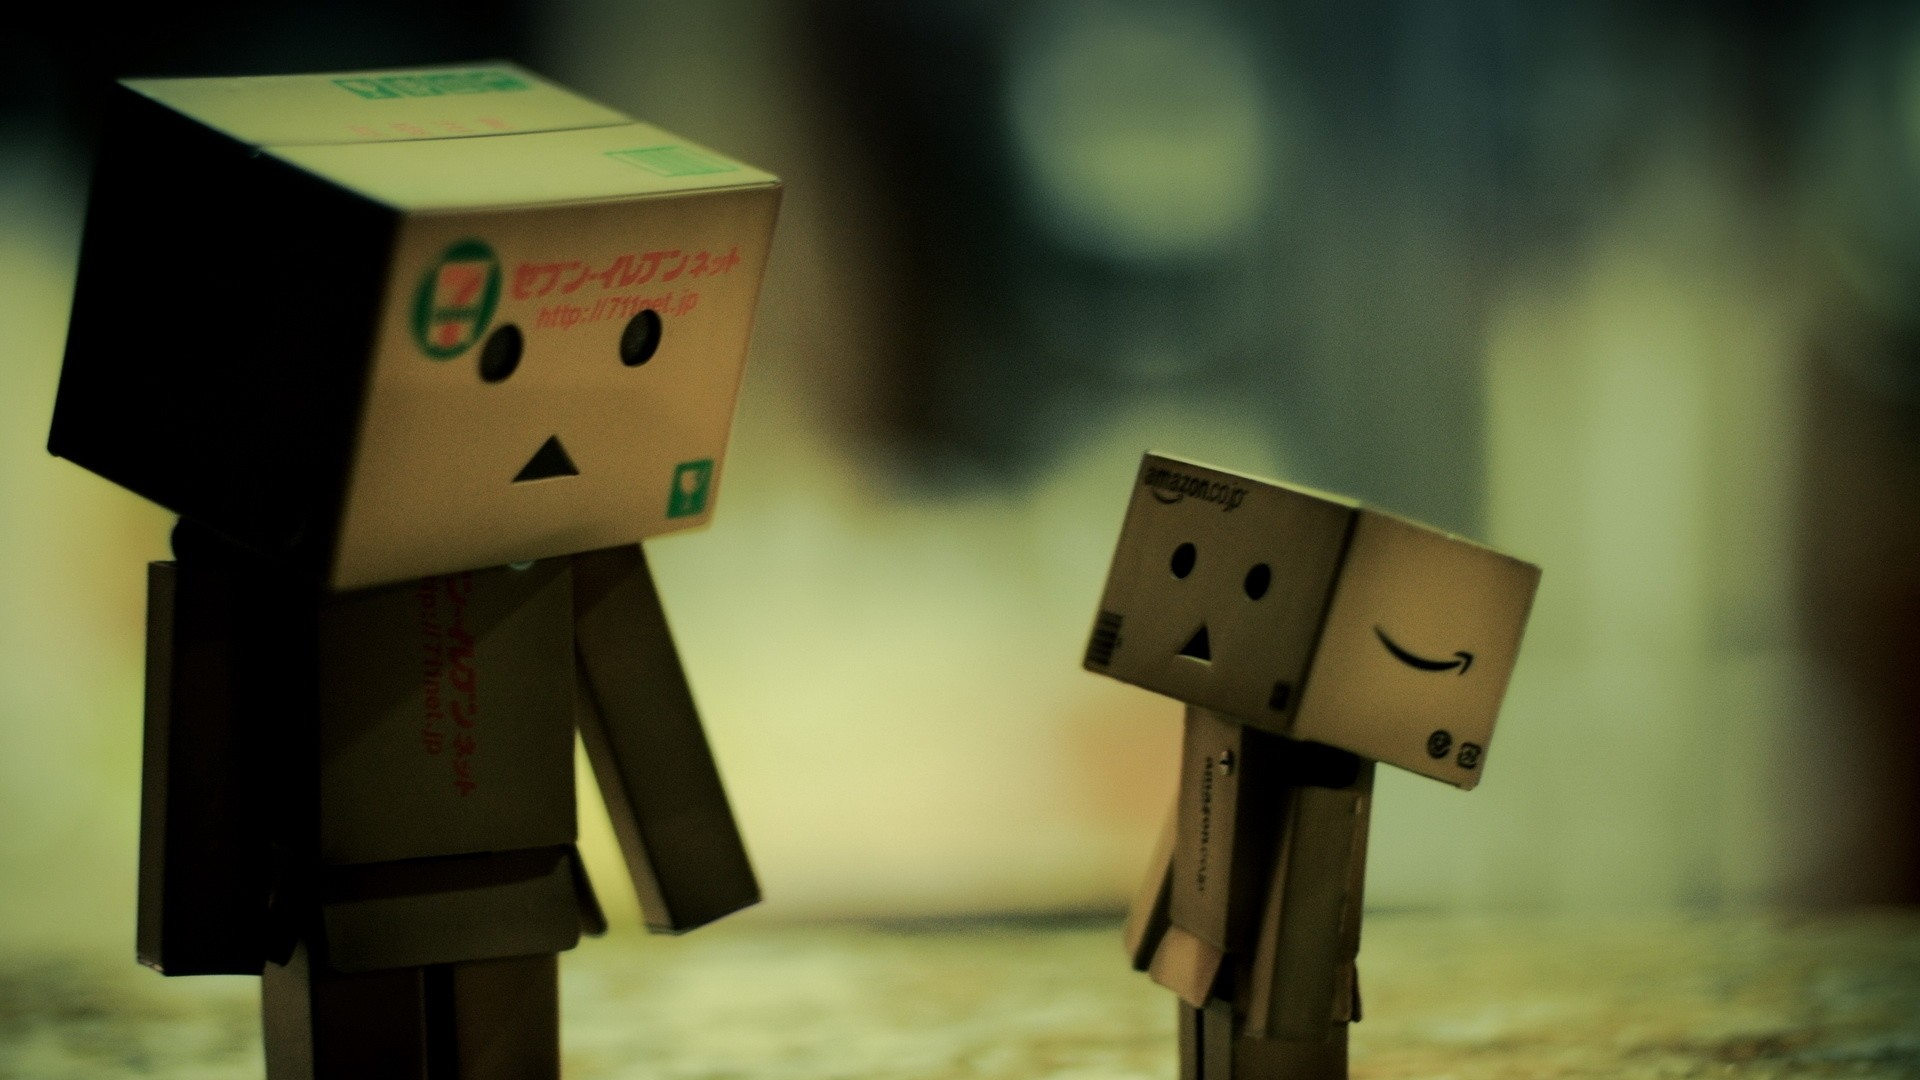 Wallpaper danboard, boxes, robots, steam, reflections,  communication, shadows of